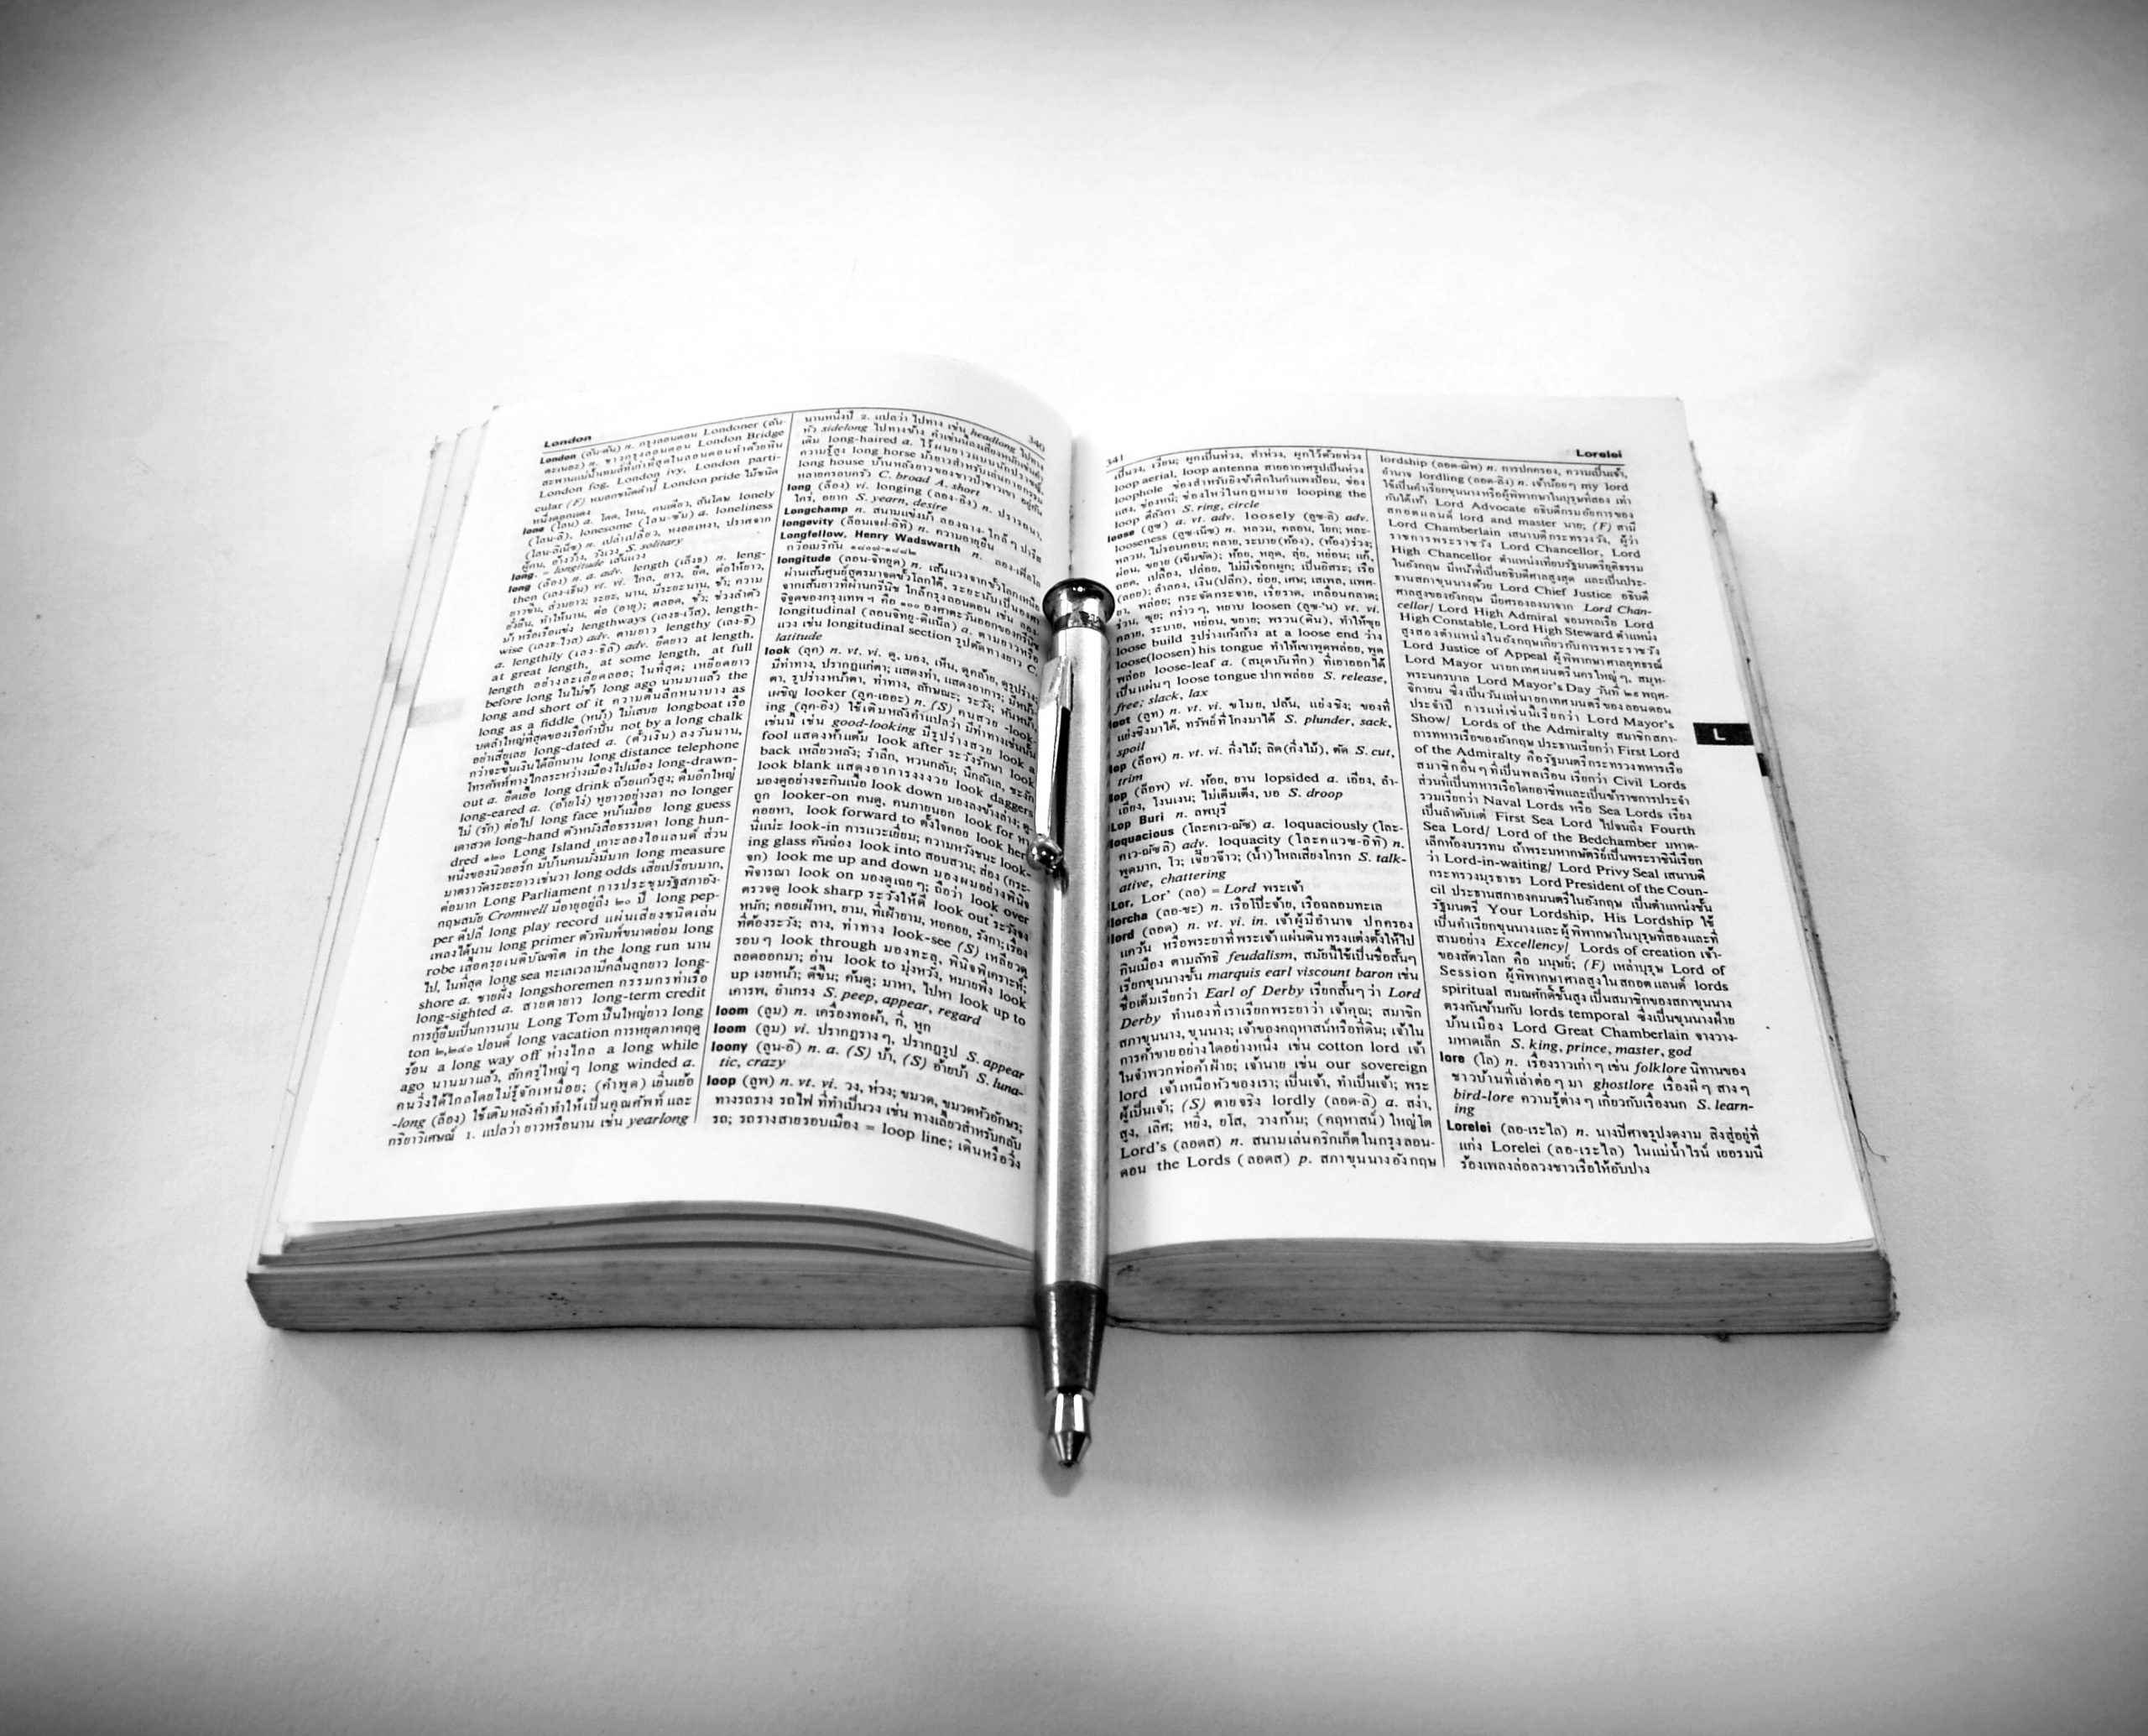 Dictionary with a pen resting on it